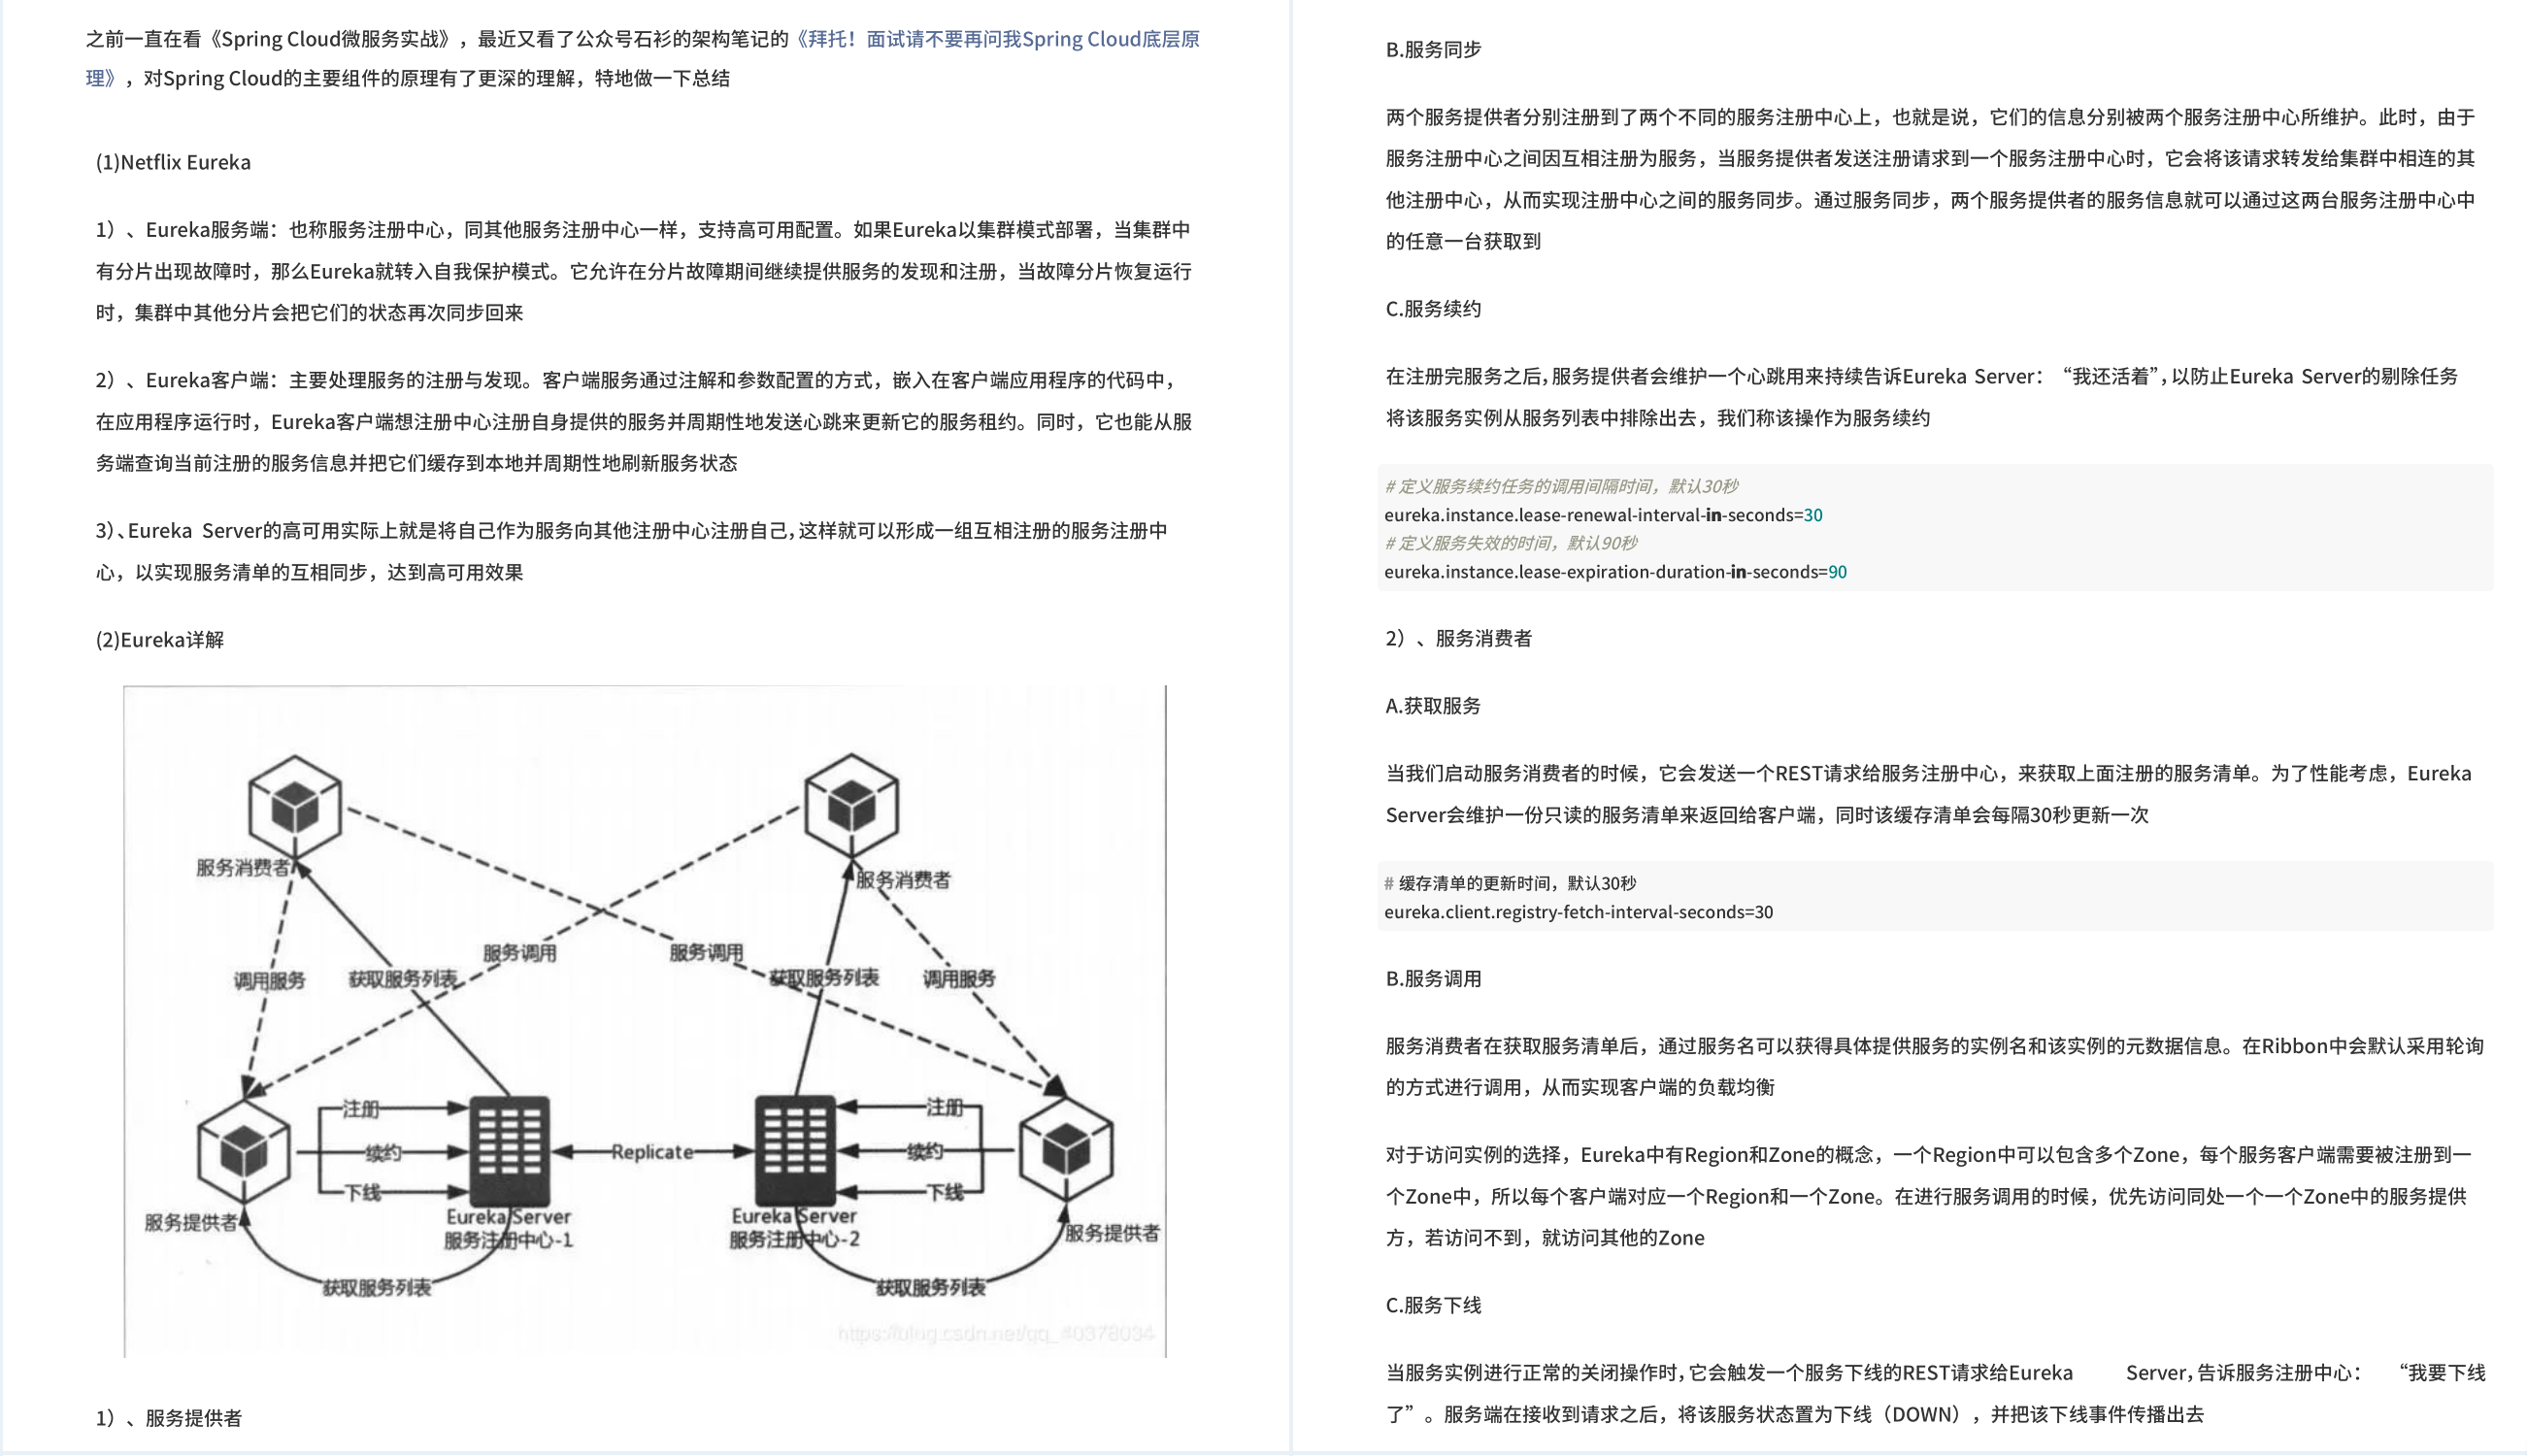 The 4588-page Java Interview Zhuxian Handbook compiled by Ali Daniel in three years is fully open source